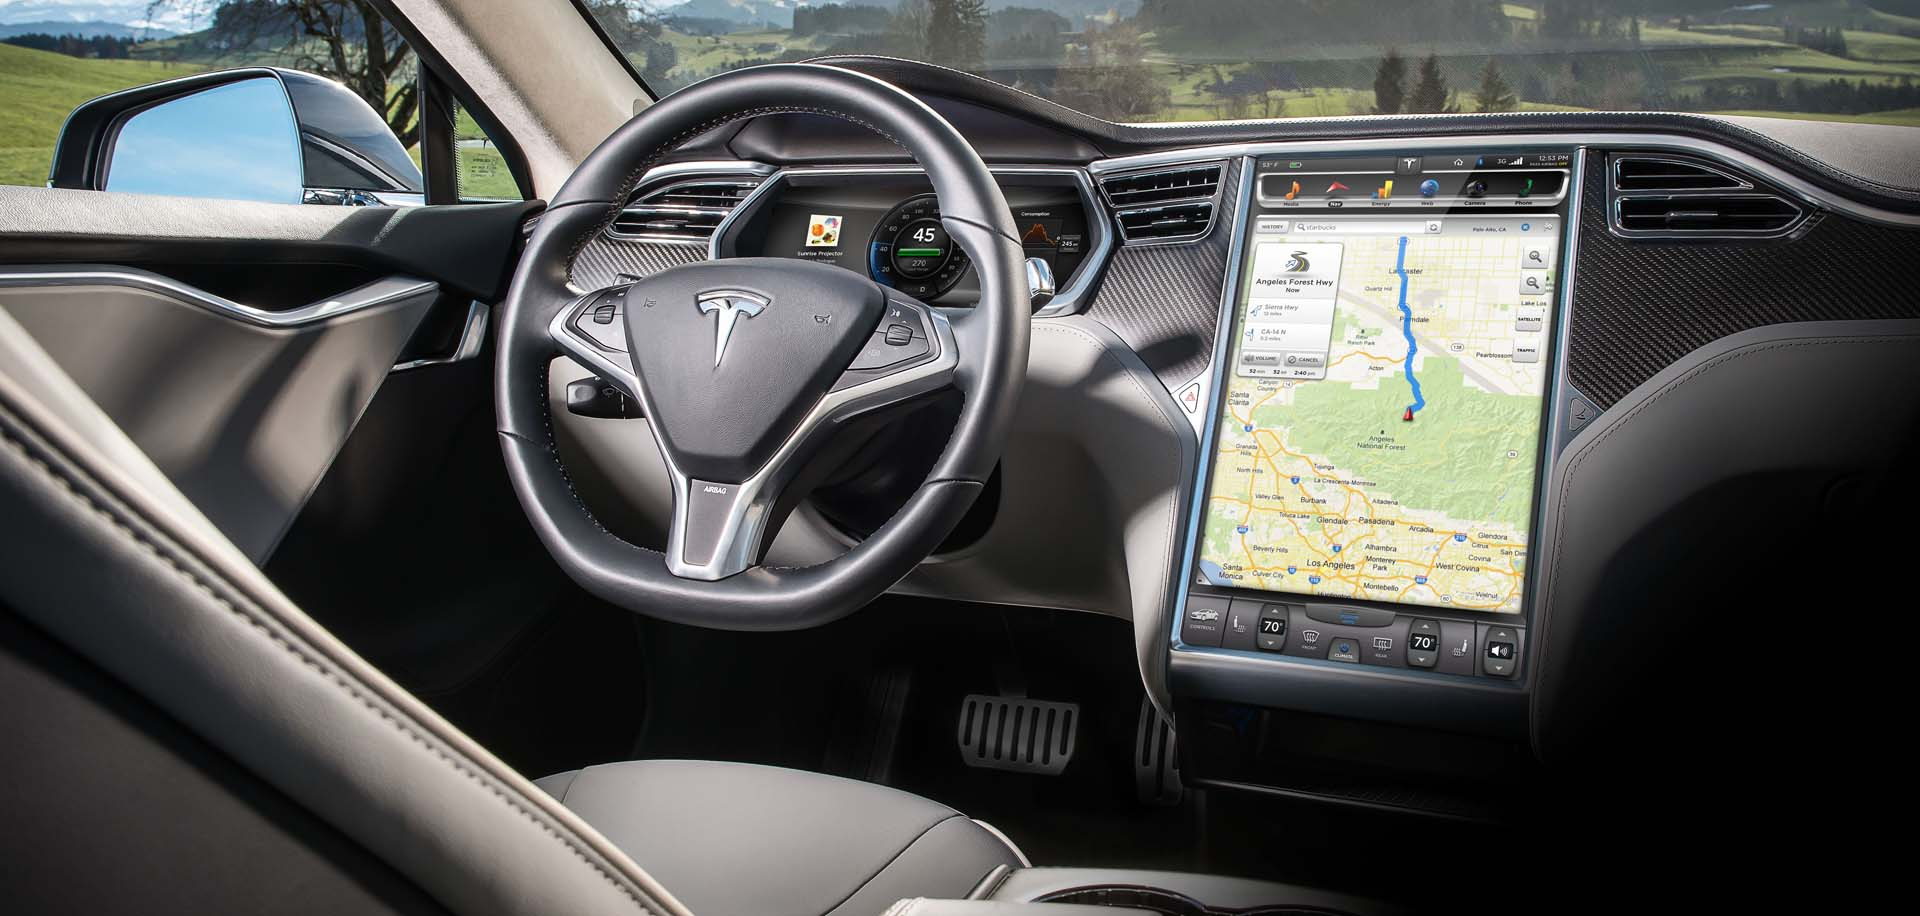 Why would Tesla want to start its own streaming music service?